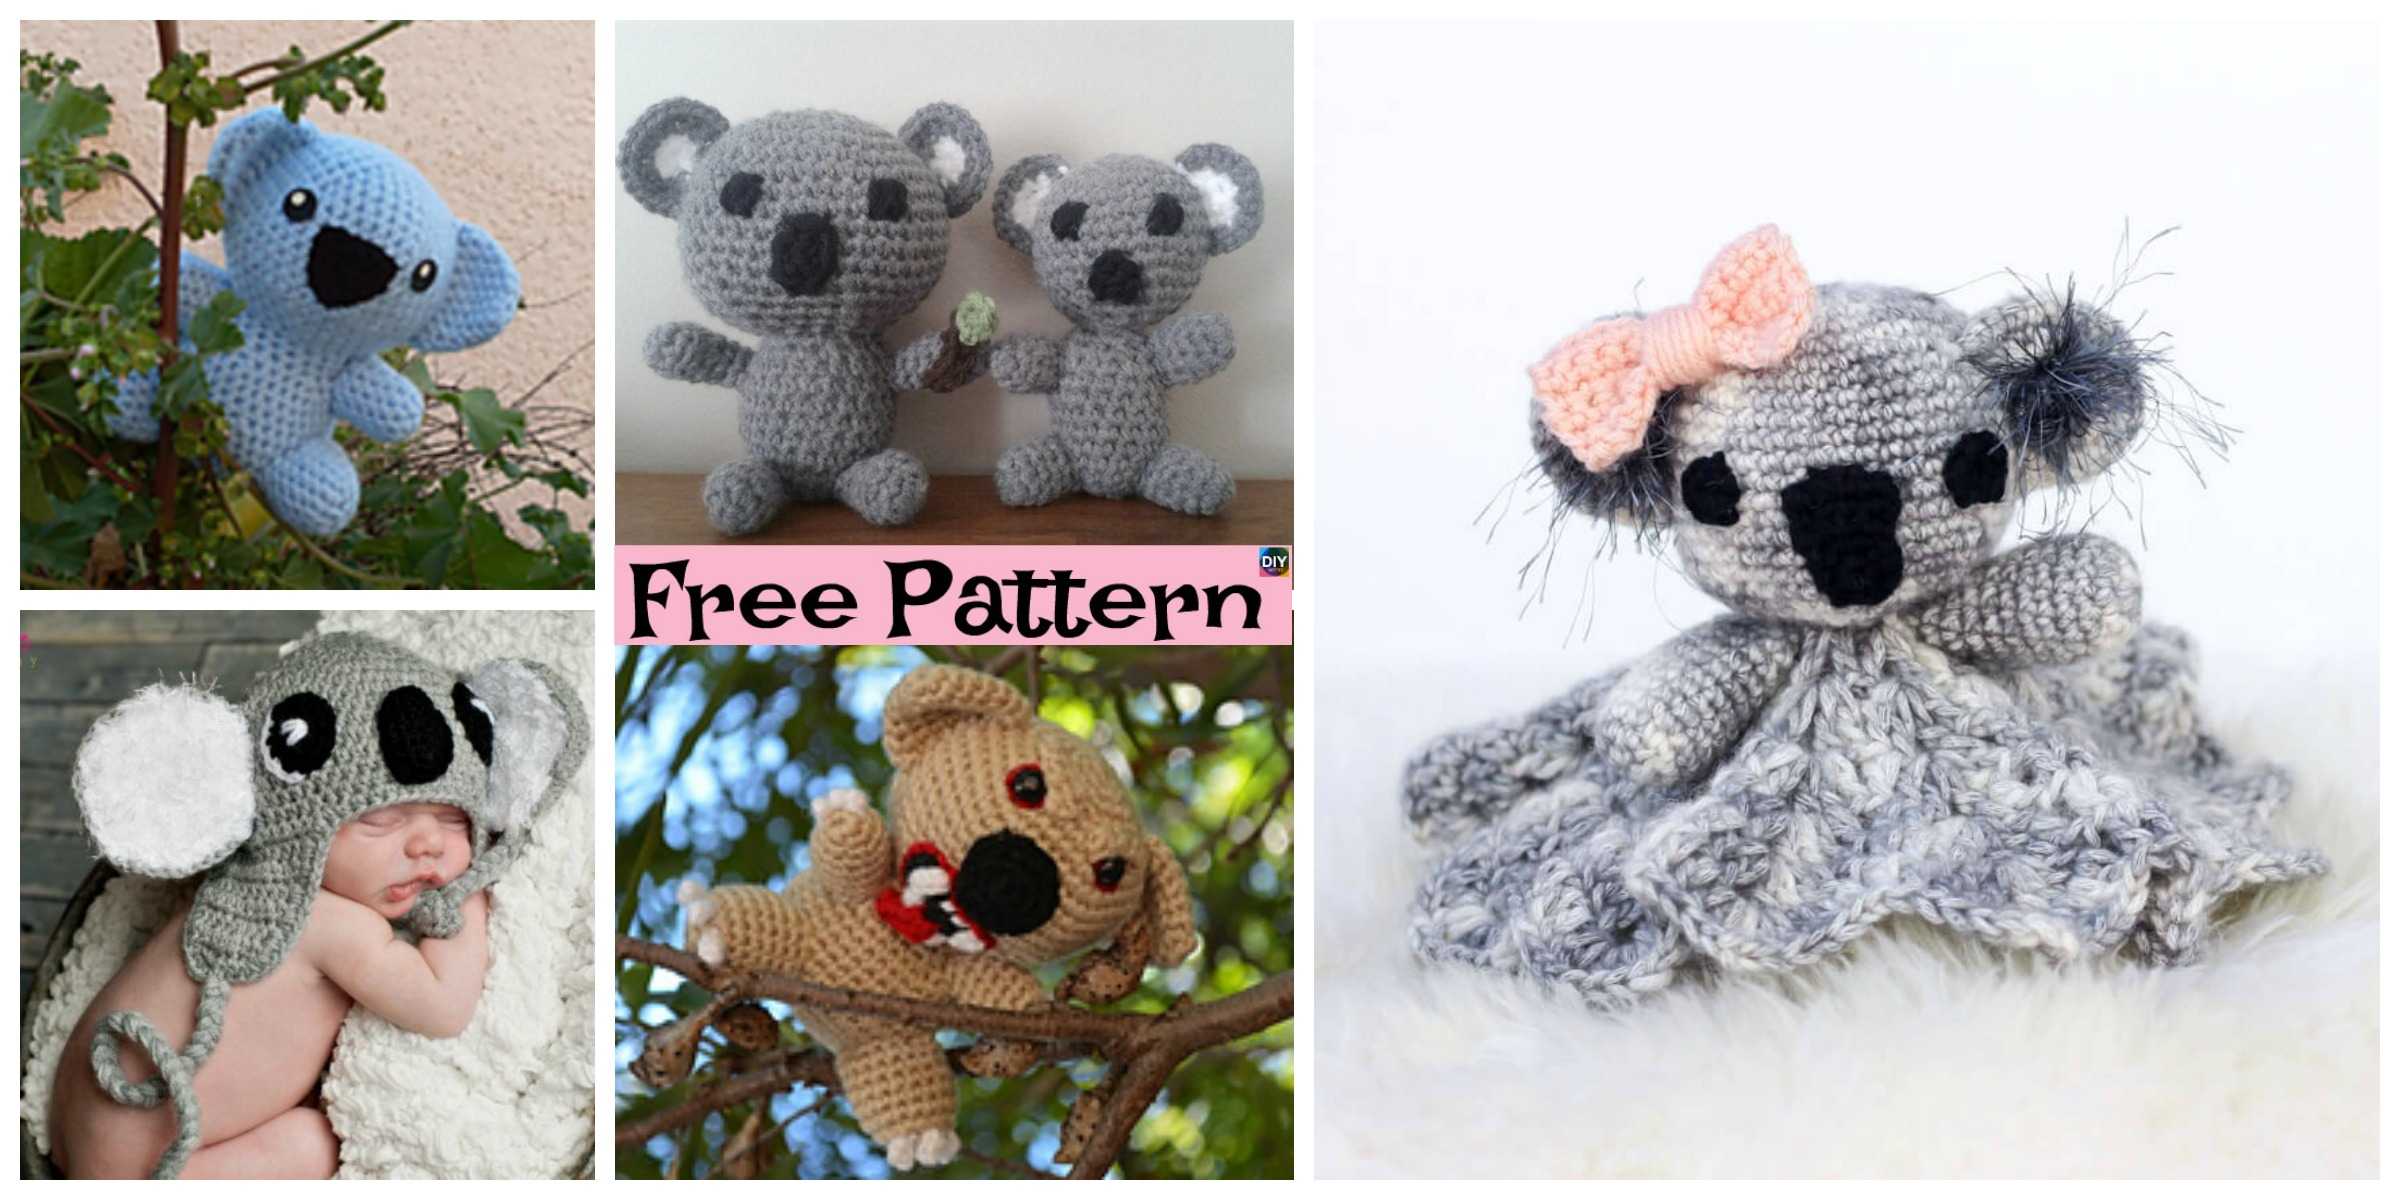 Cuddly Crochet Koala Lovey – Free Patterns